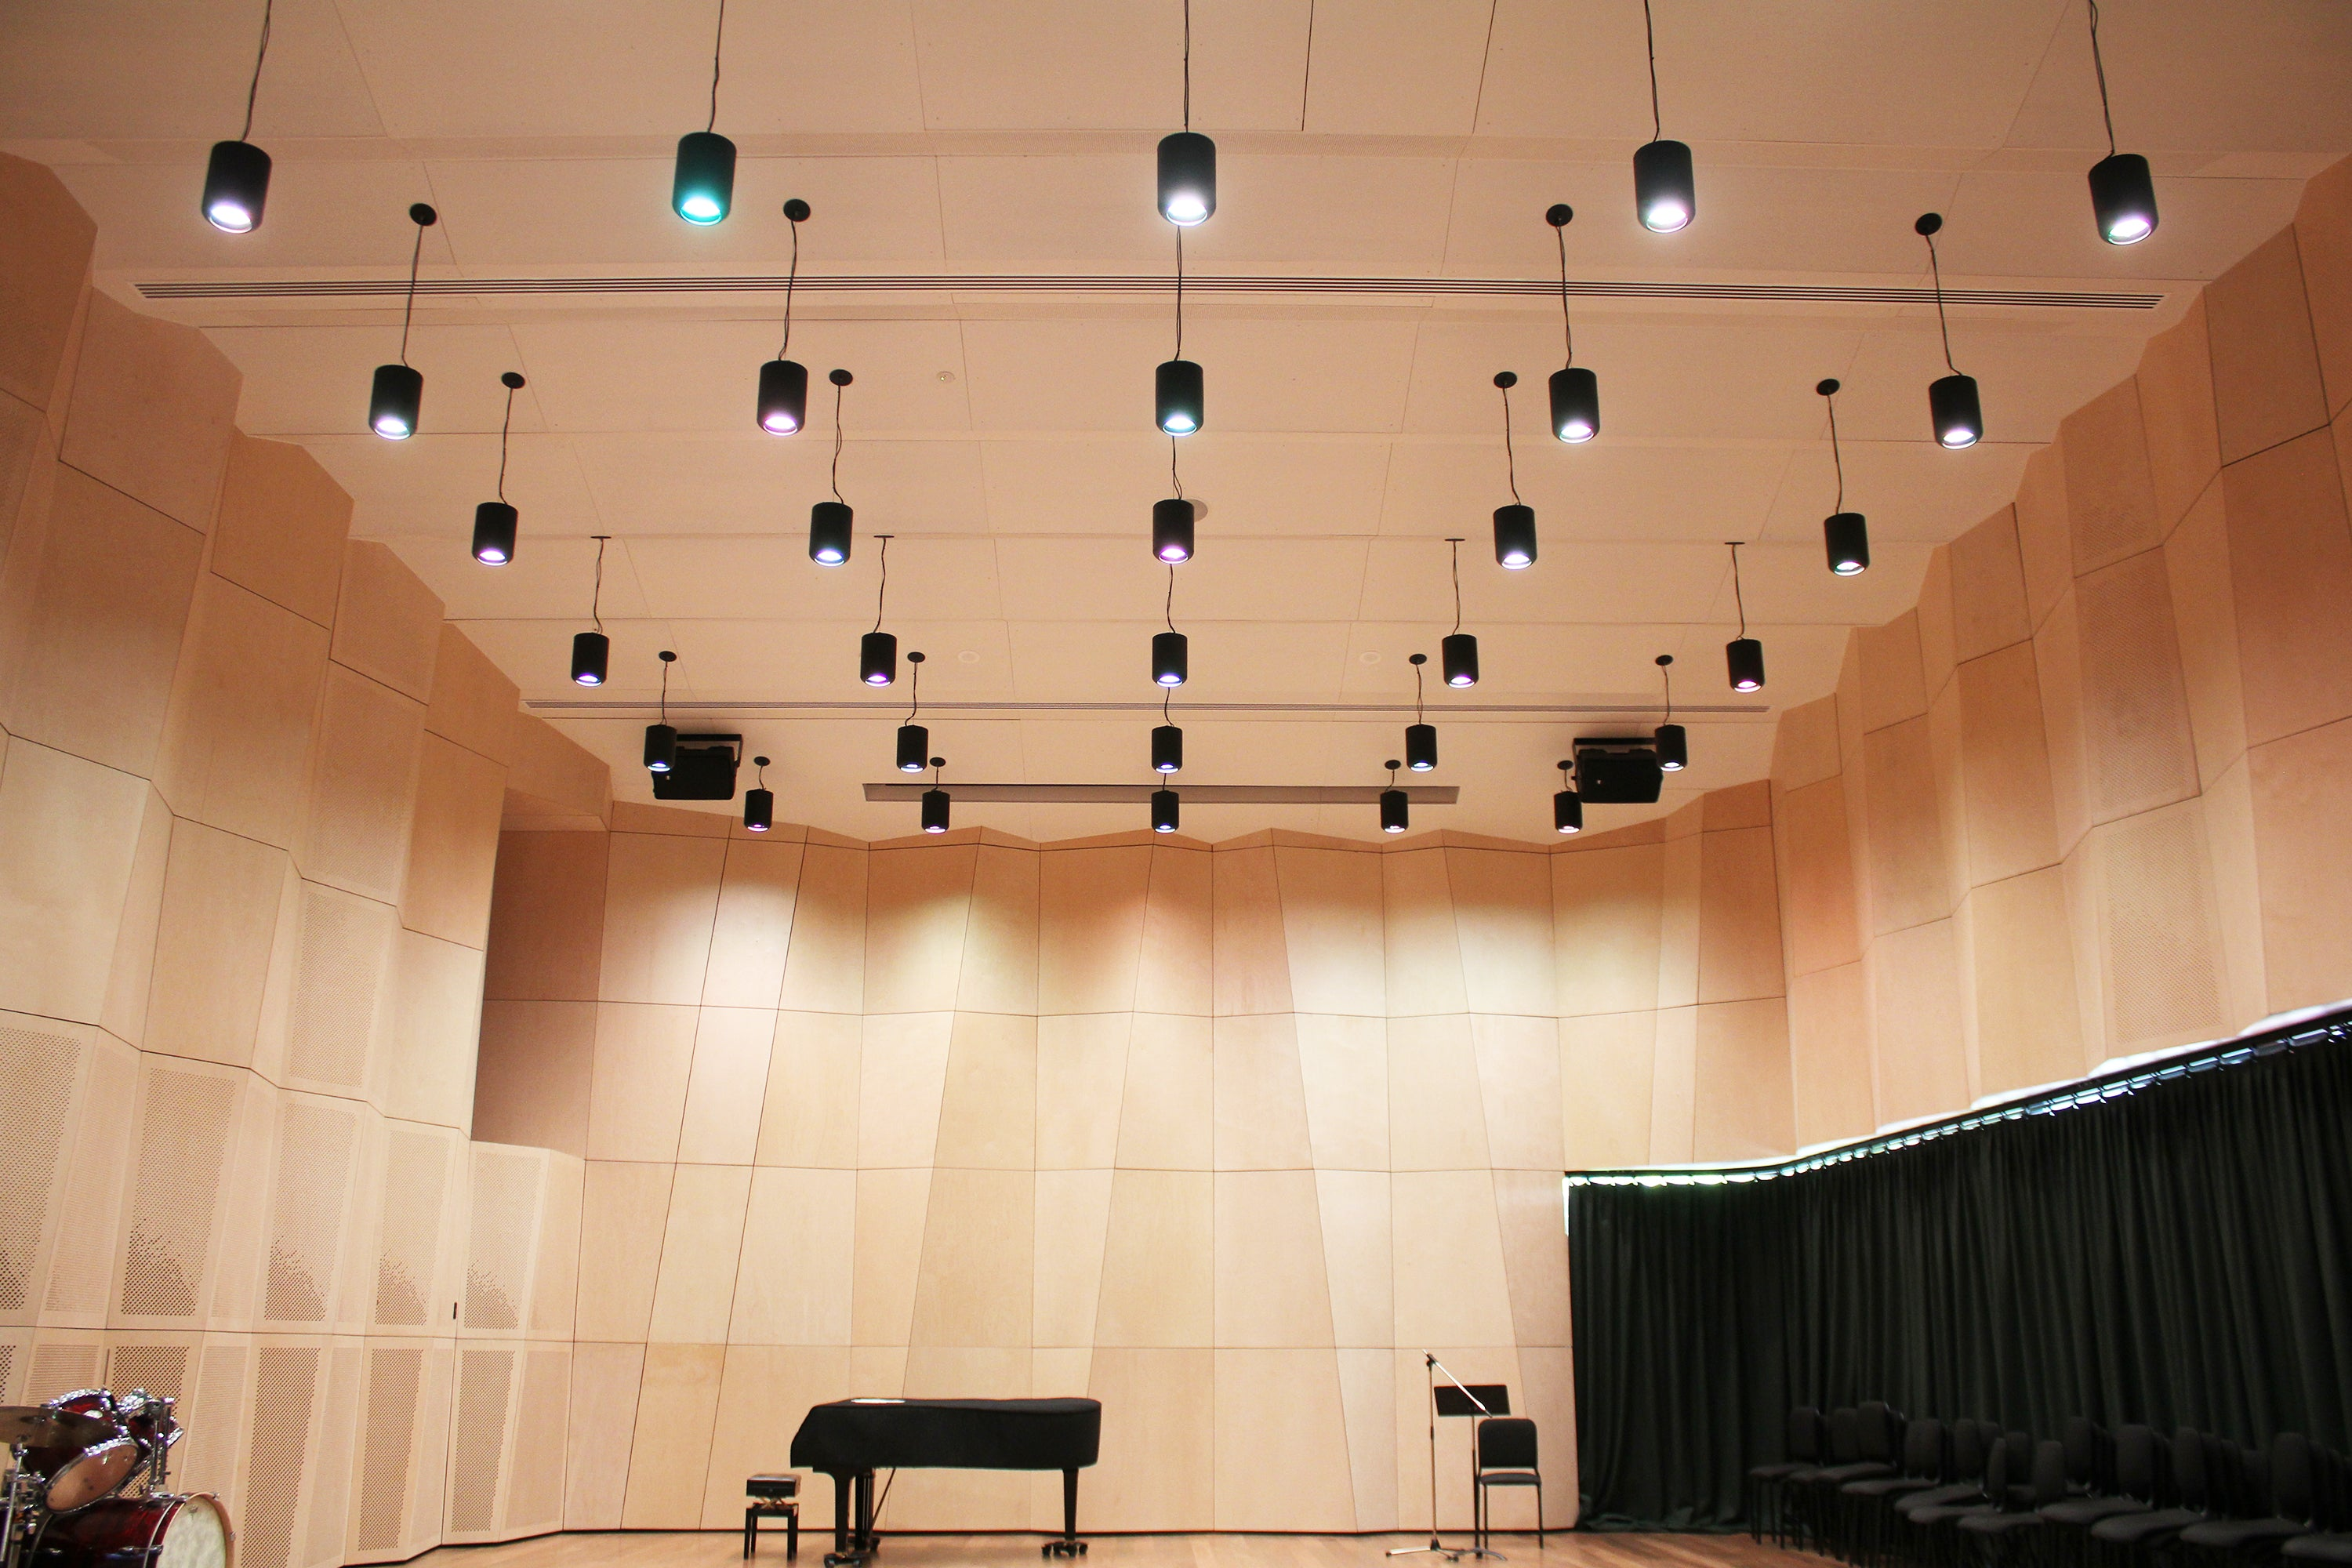 Music School orchestral rehearsal and recital room